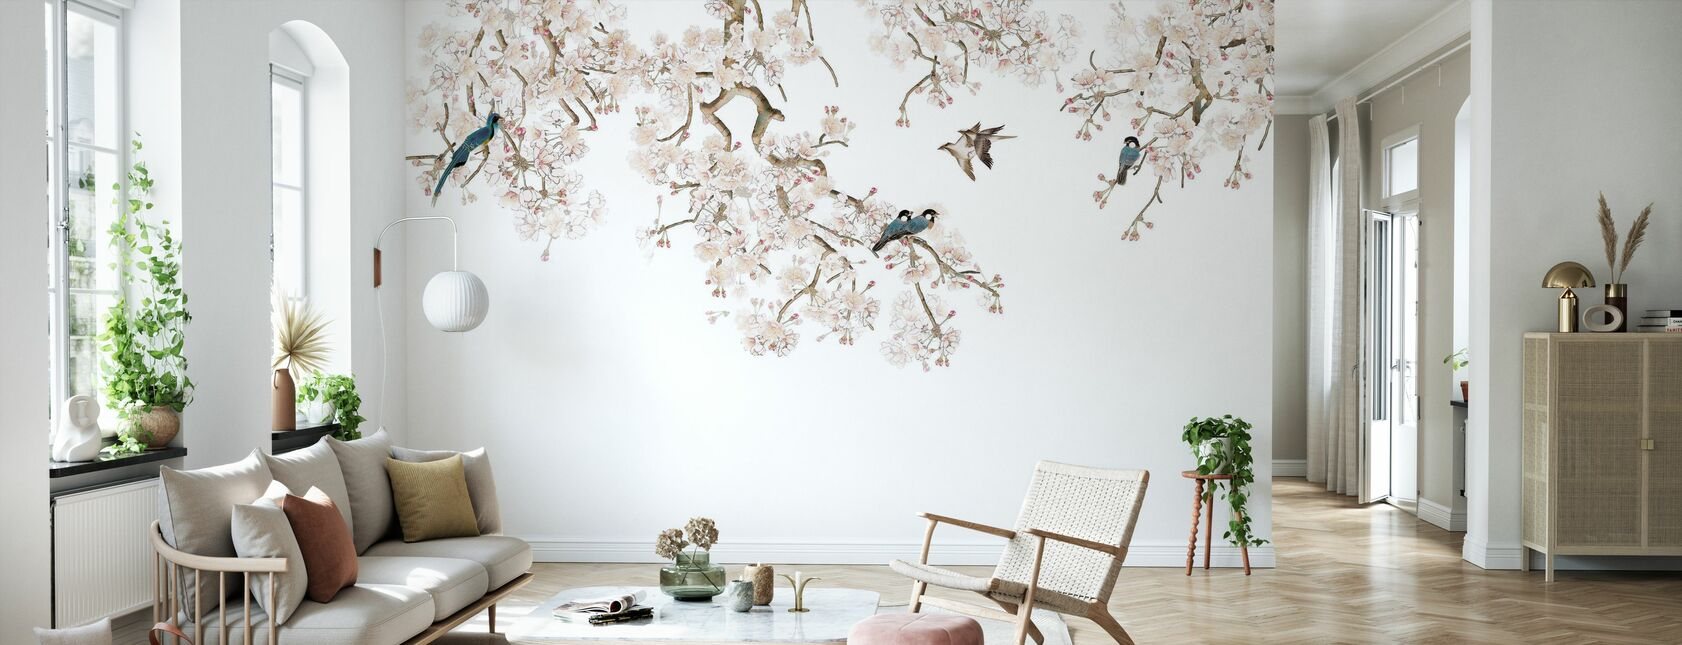 Birds Hangout - Wallpaper - Living Room